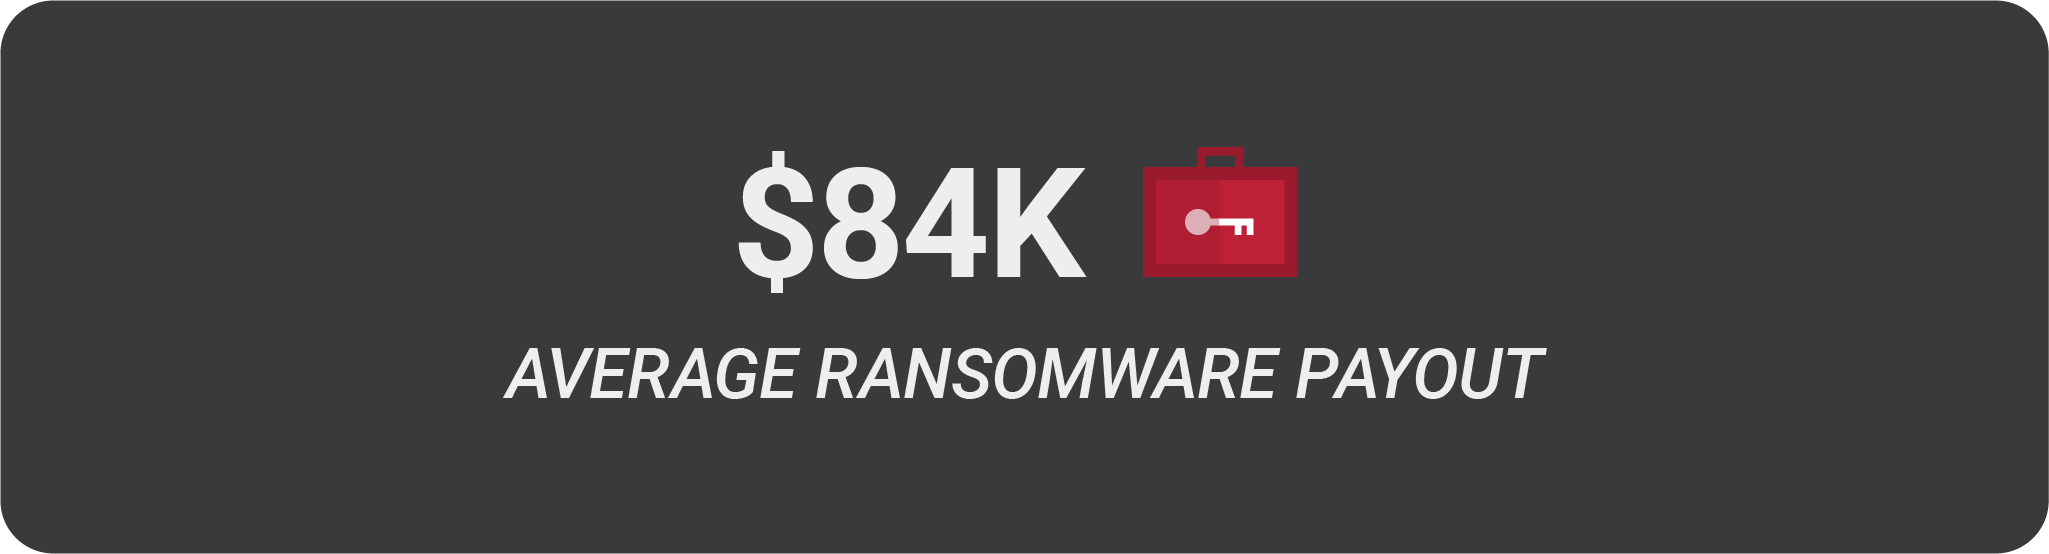 info on ransomware payout